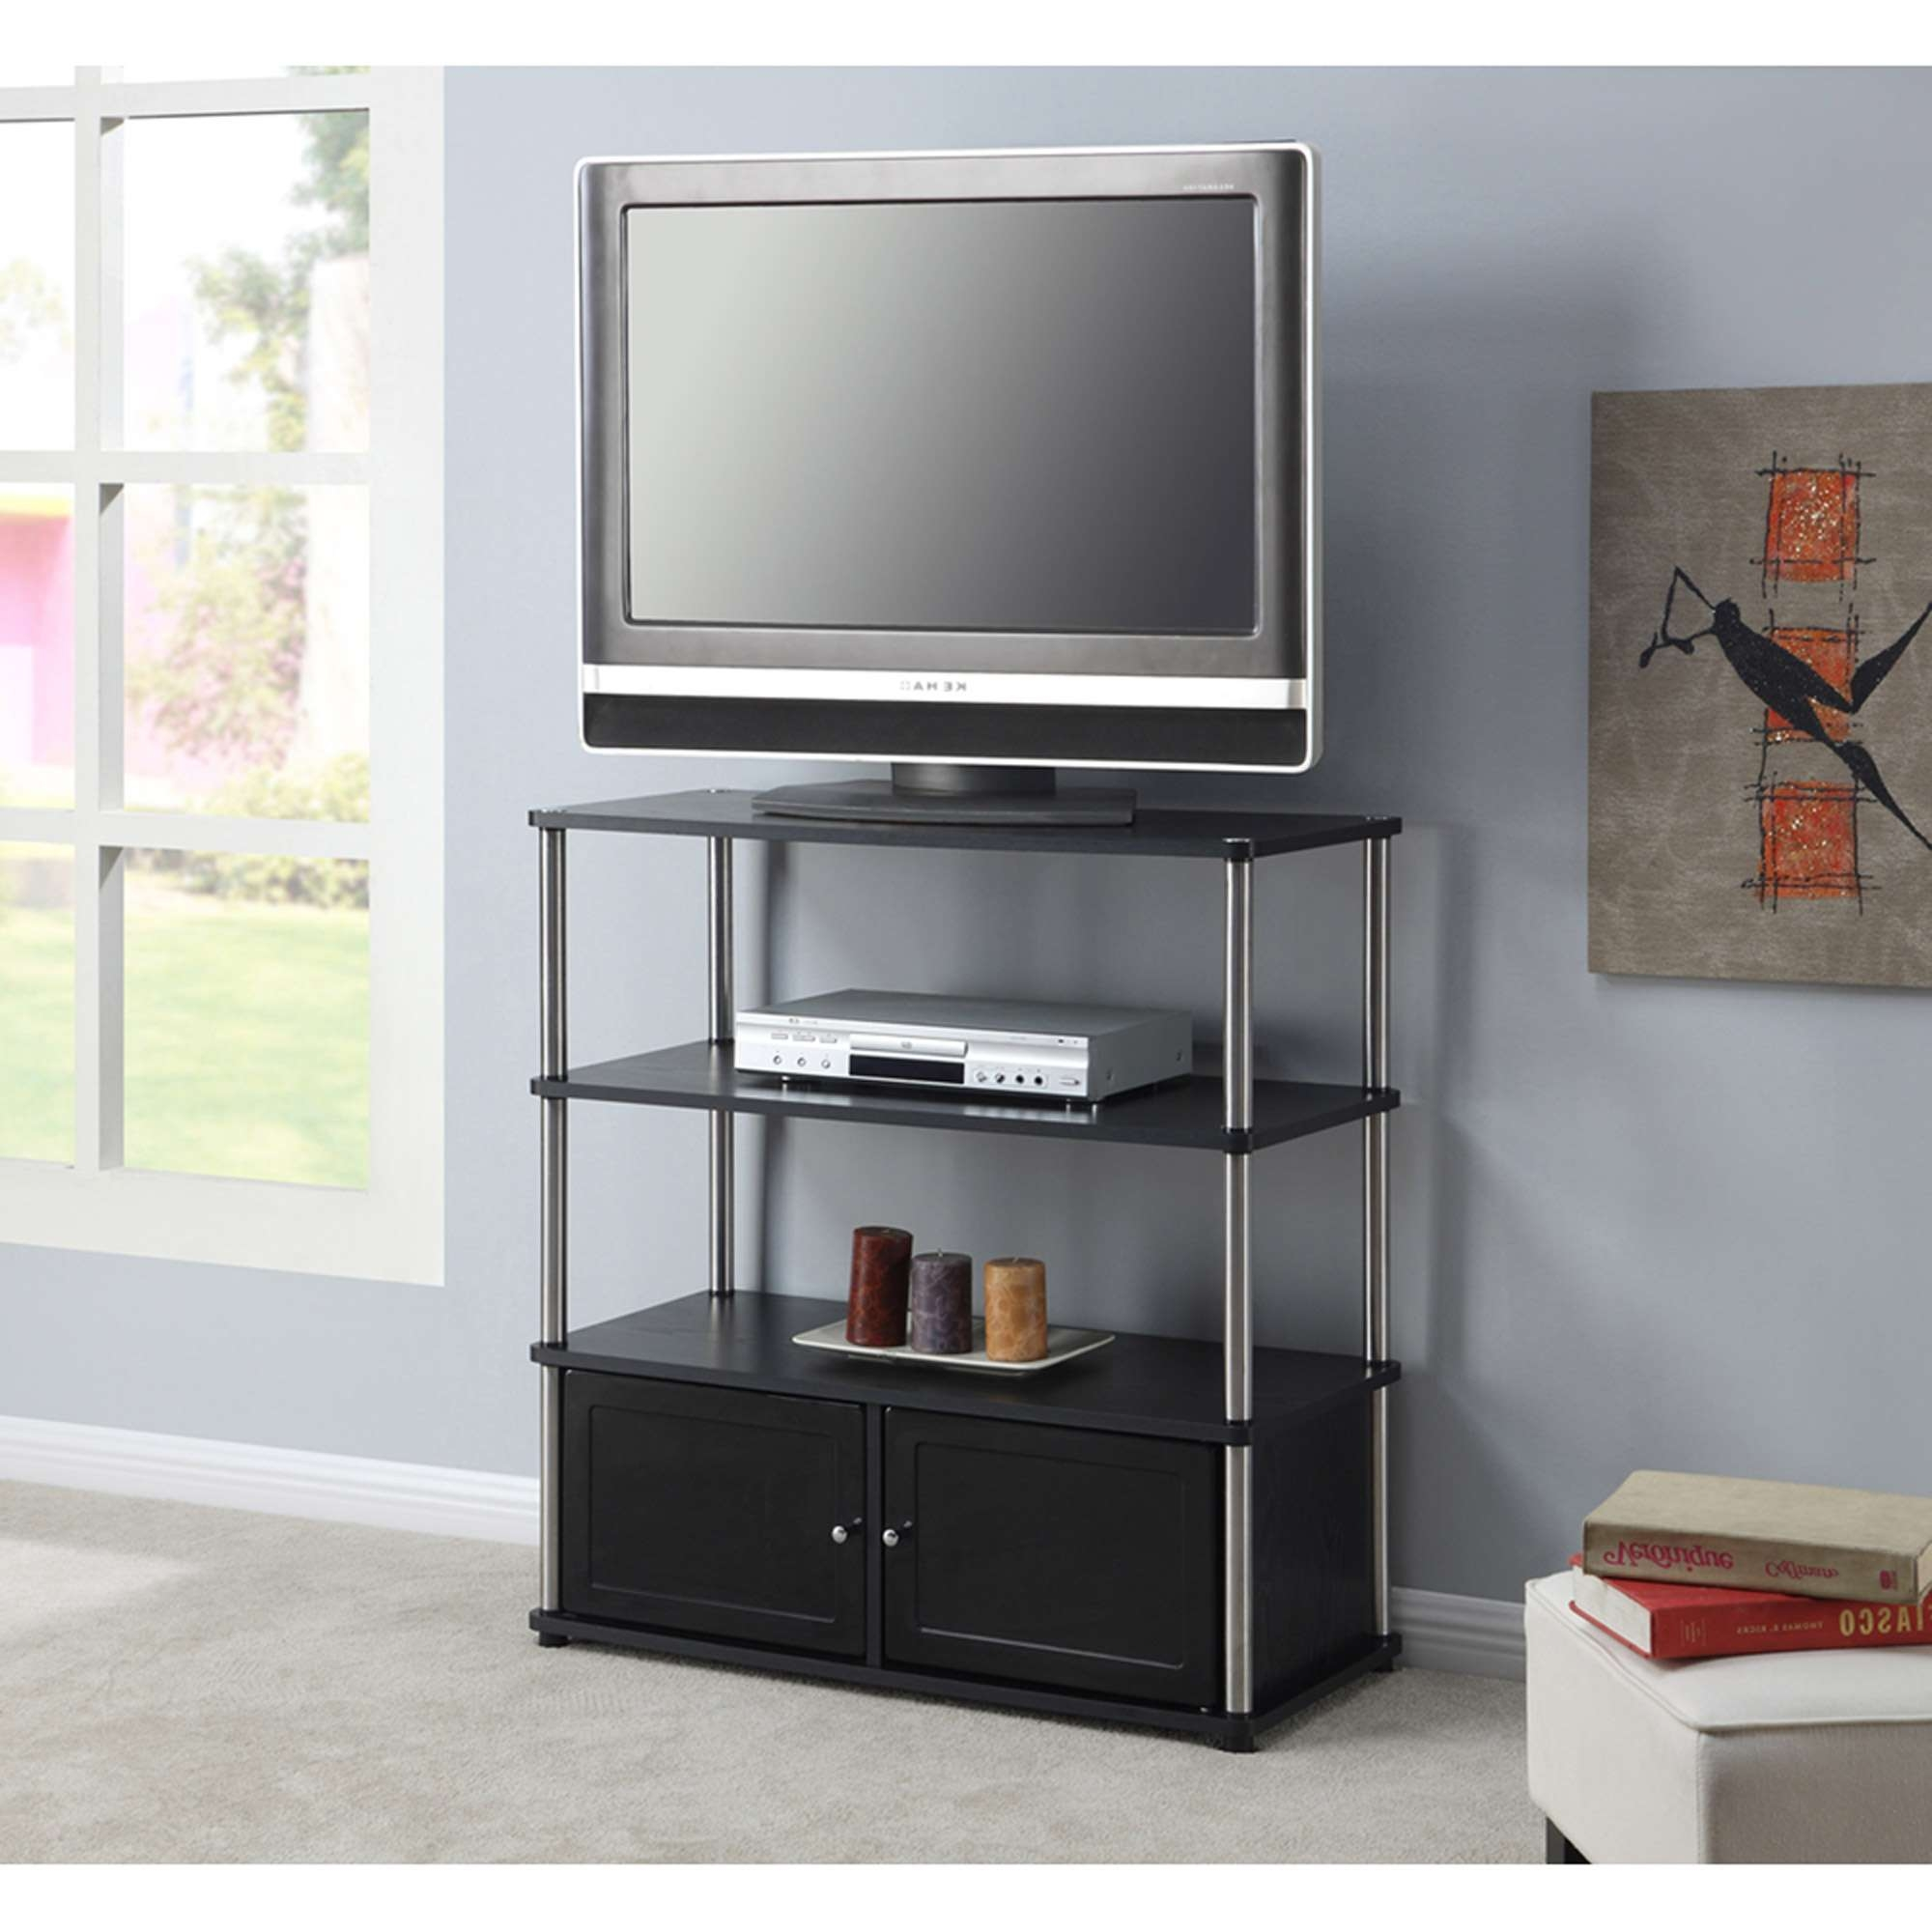 Tv Stand : High Tv Stand Tv027 Modern In Red Gloss Free Shipping Regarding Red Modern Tv Stands (View 11 of 15)